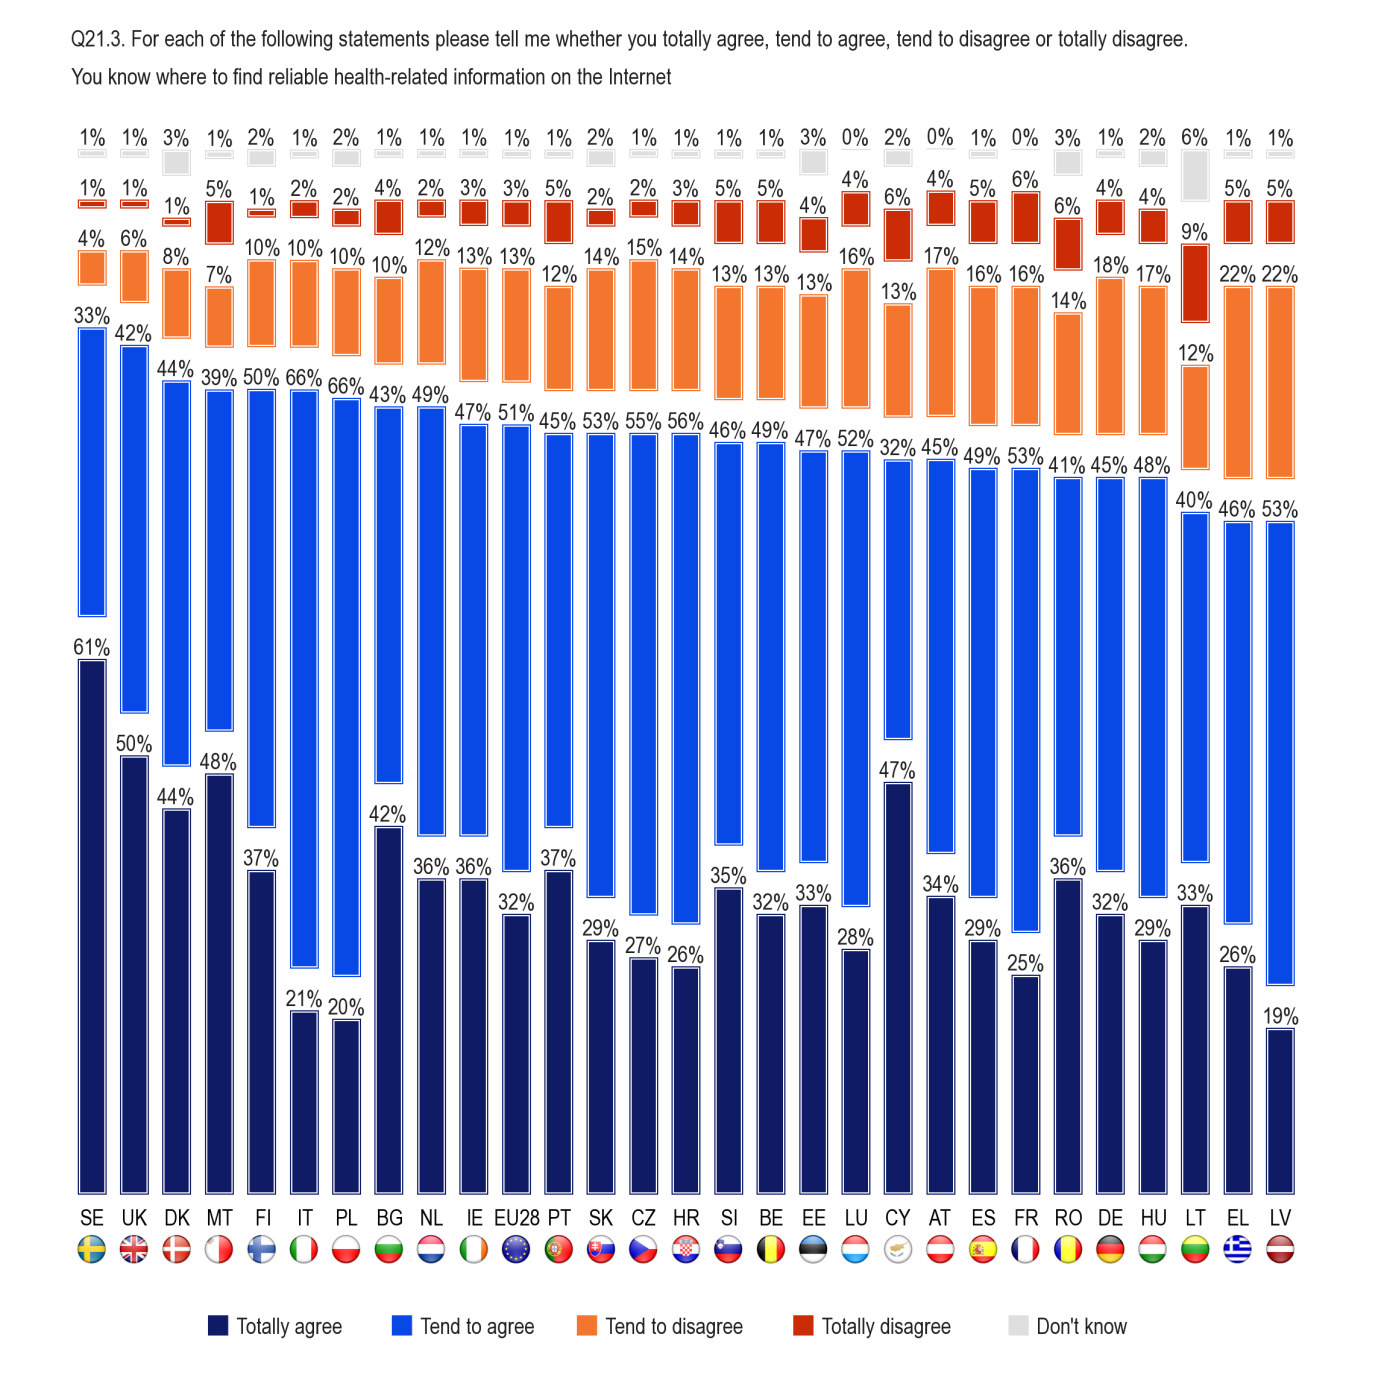 FLASH EUROBAROMETER At least eight out of ten people in 18 countries agree that they know where to find reliable health-related information on the Internet.